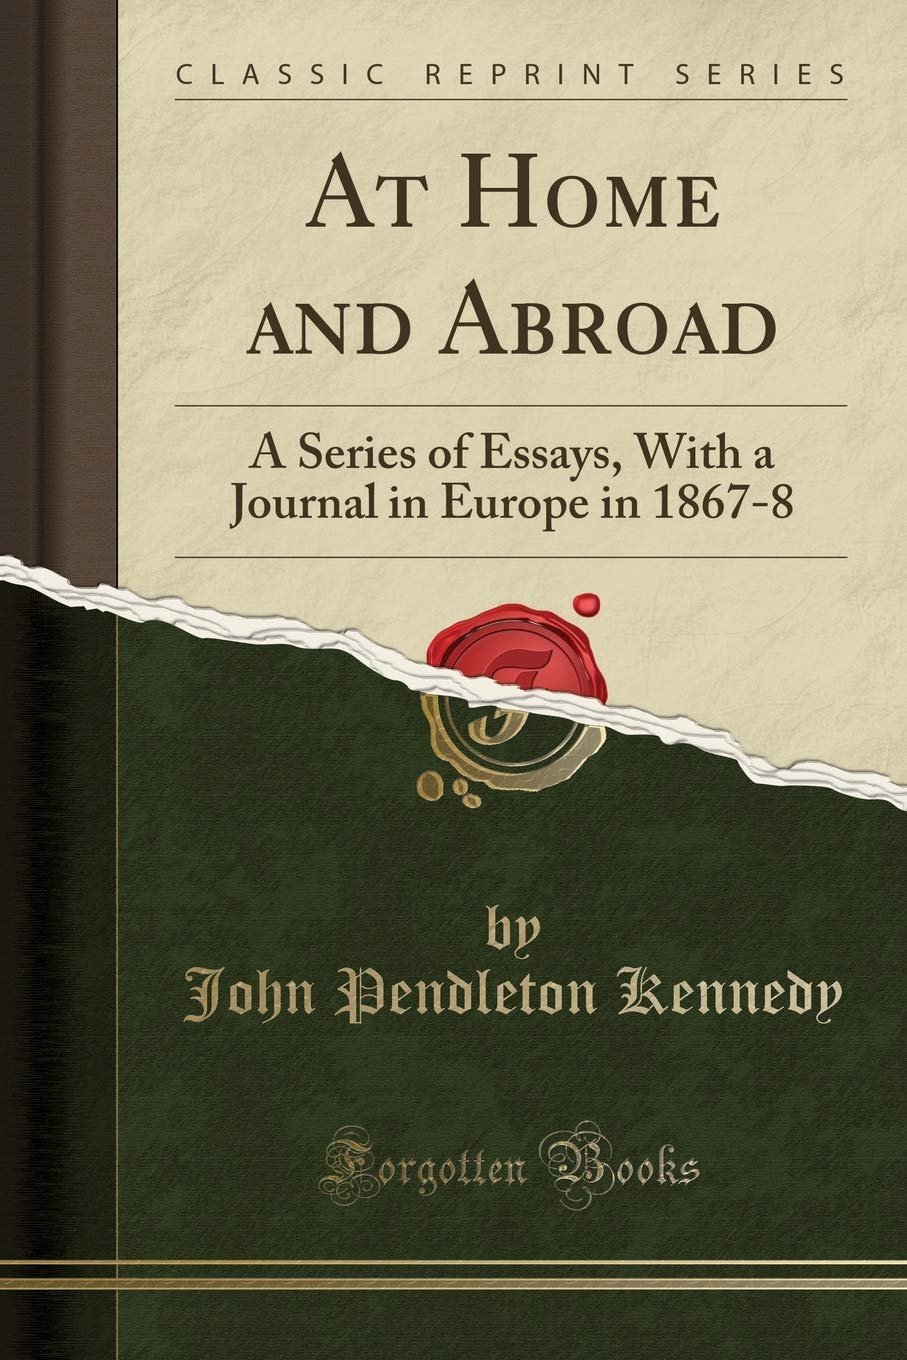 At Home and Abroad: A Series of Essays, With a Journal in Europe in 1867-8 (Classic Reprint) PDF Text fb2 book